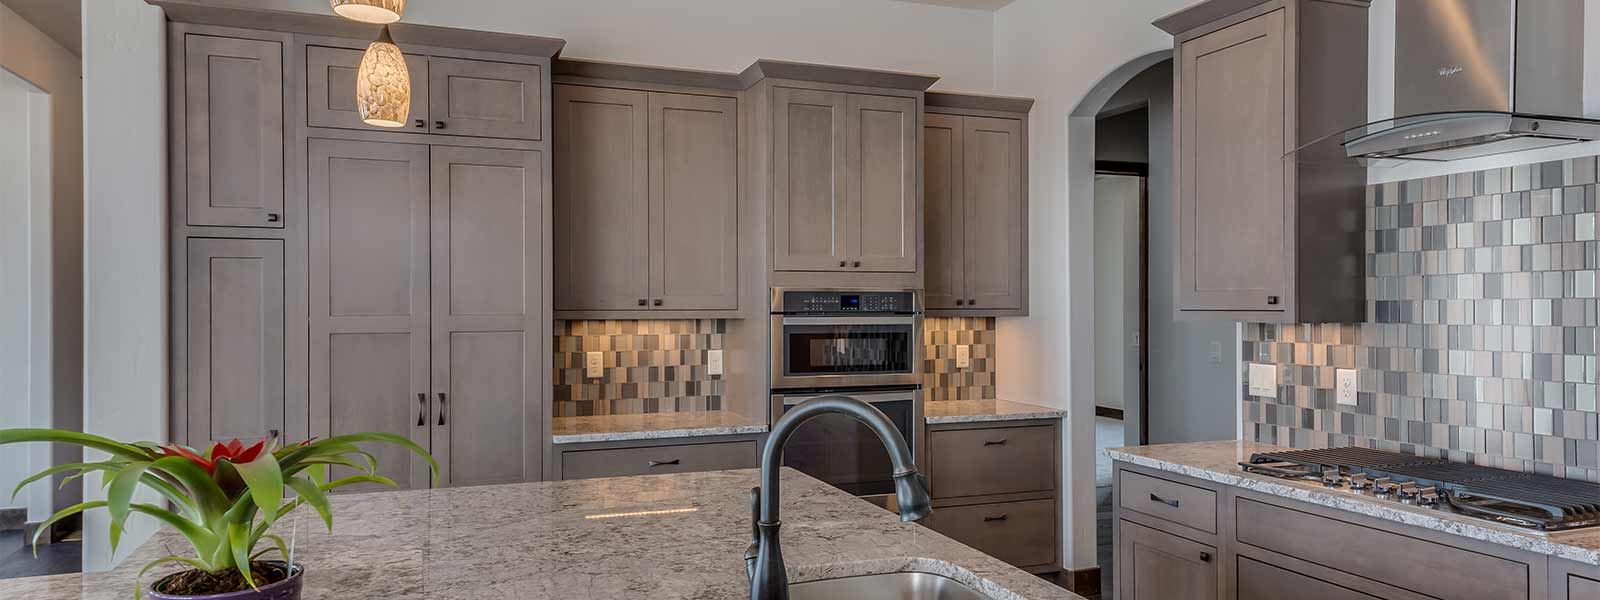 336-West-Ridges-Blvd-kitchen-2